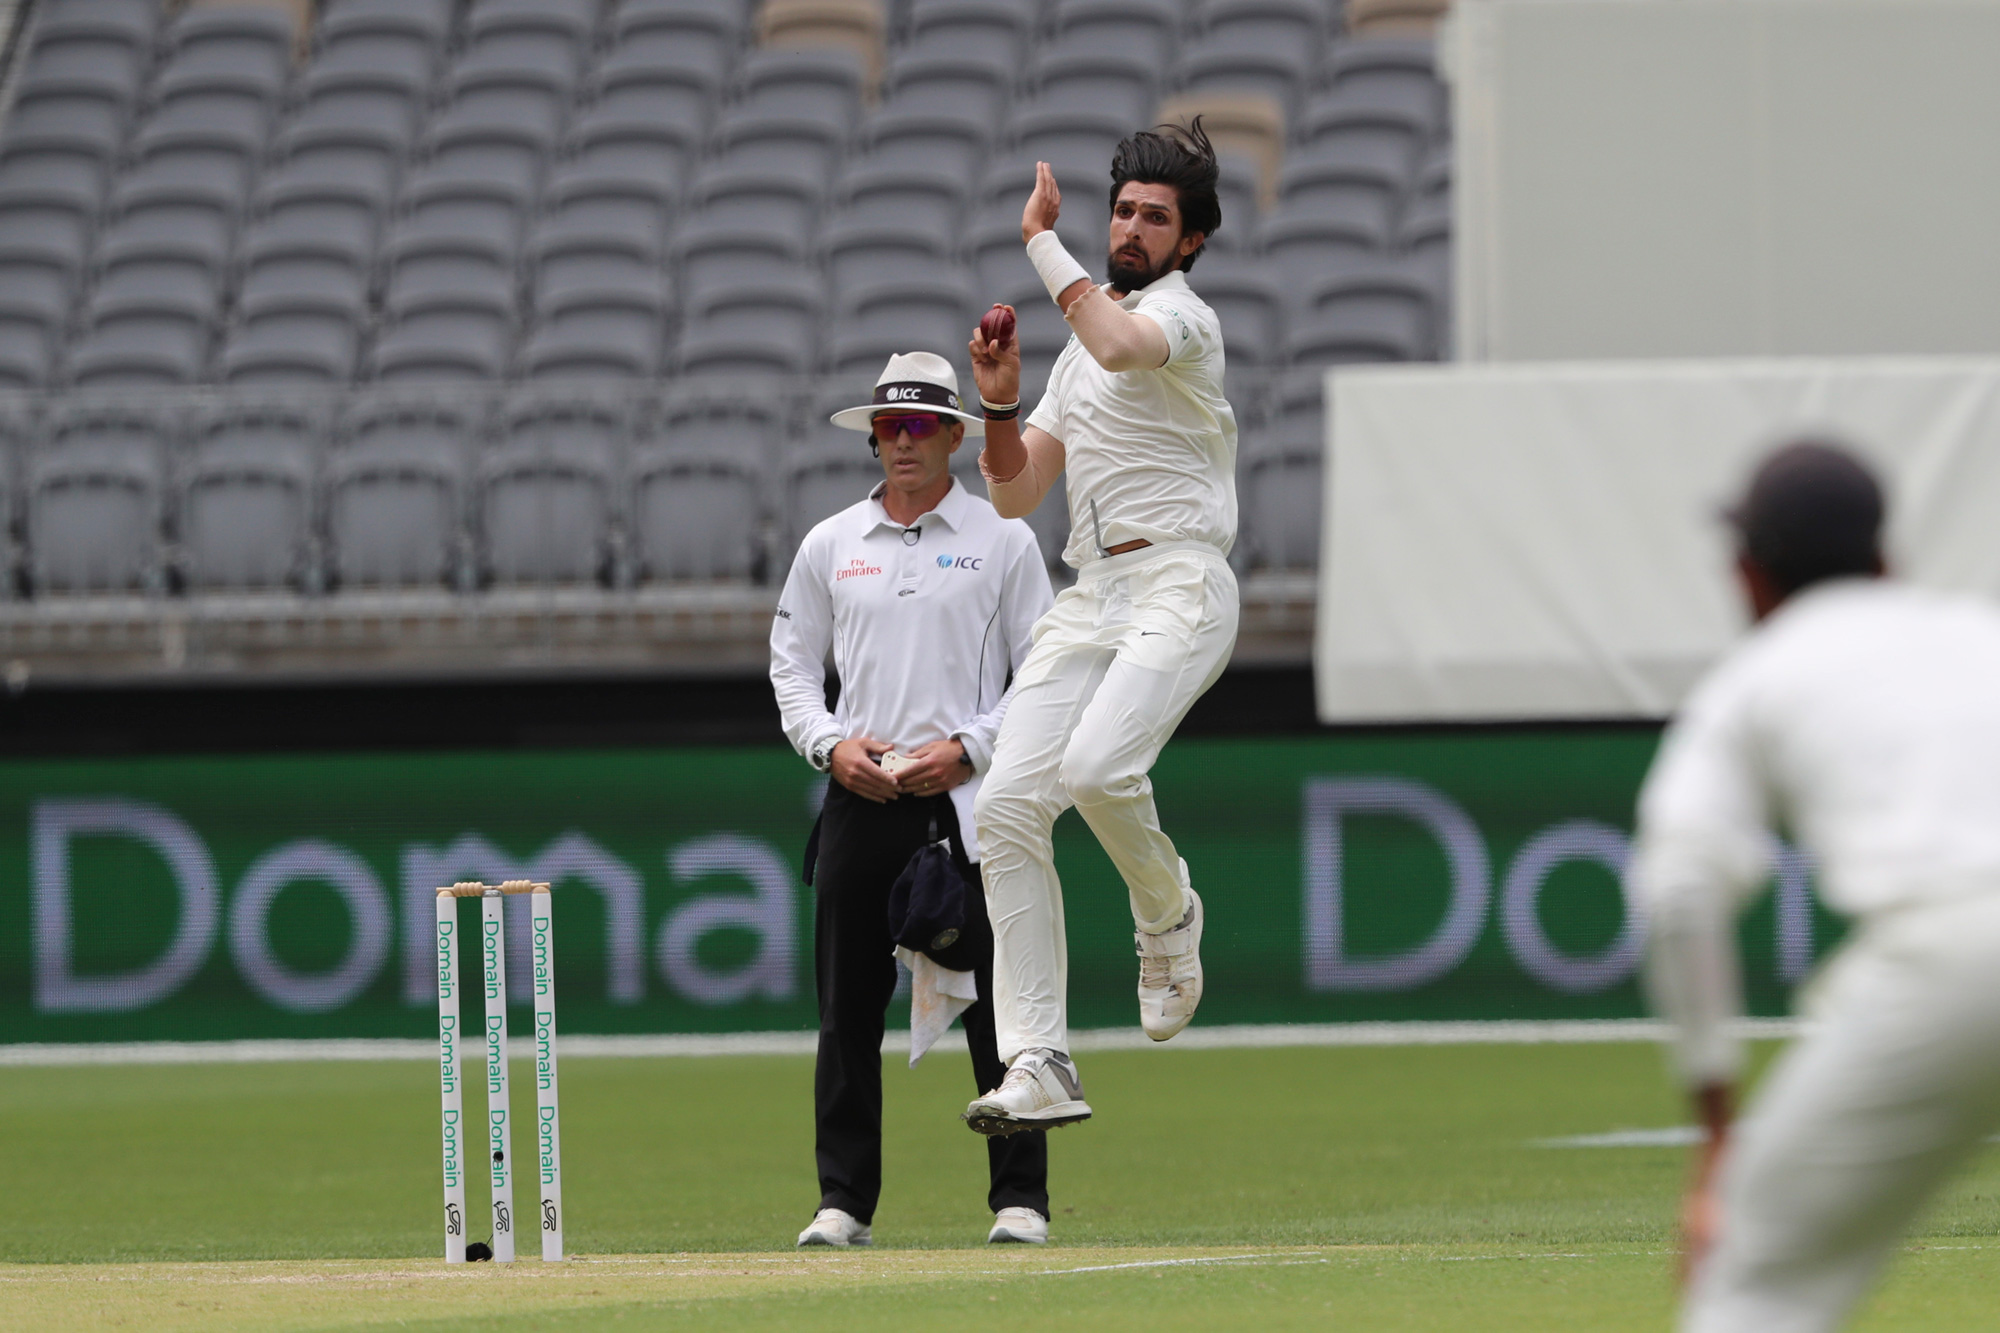 India's Ishant Sharma bowls in the second Test between Australia and India in Perth. The ICC has taken a number of steps to popularize Test matches, including the ICC World Test Championship and day-and-night Test matches.